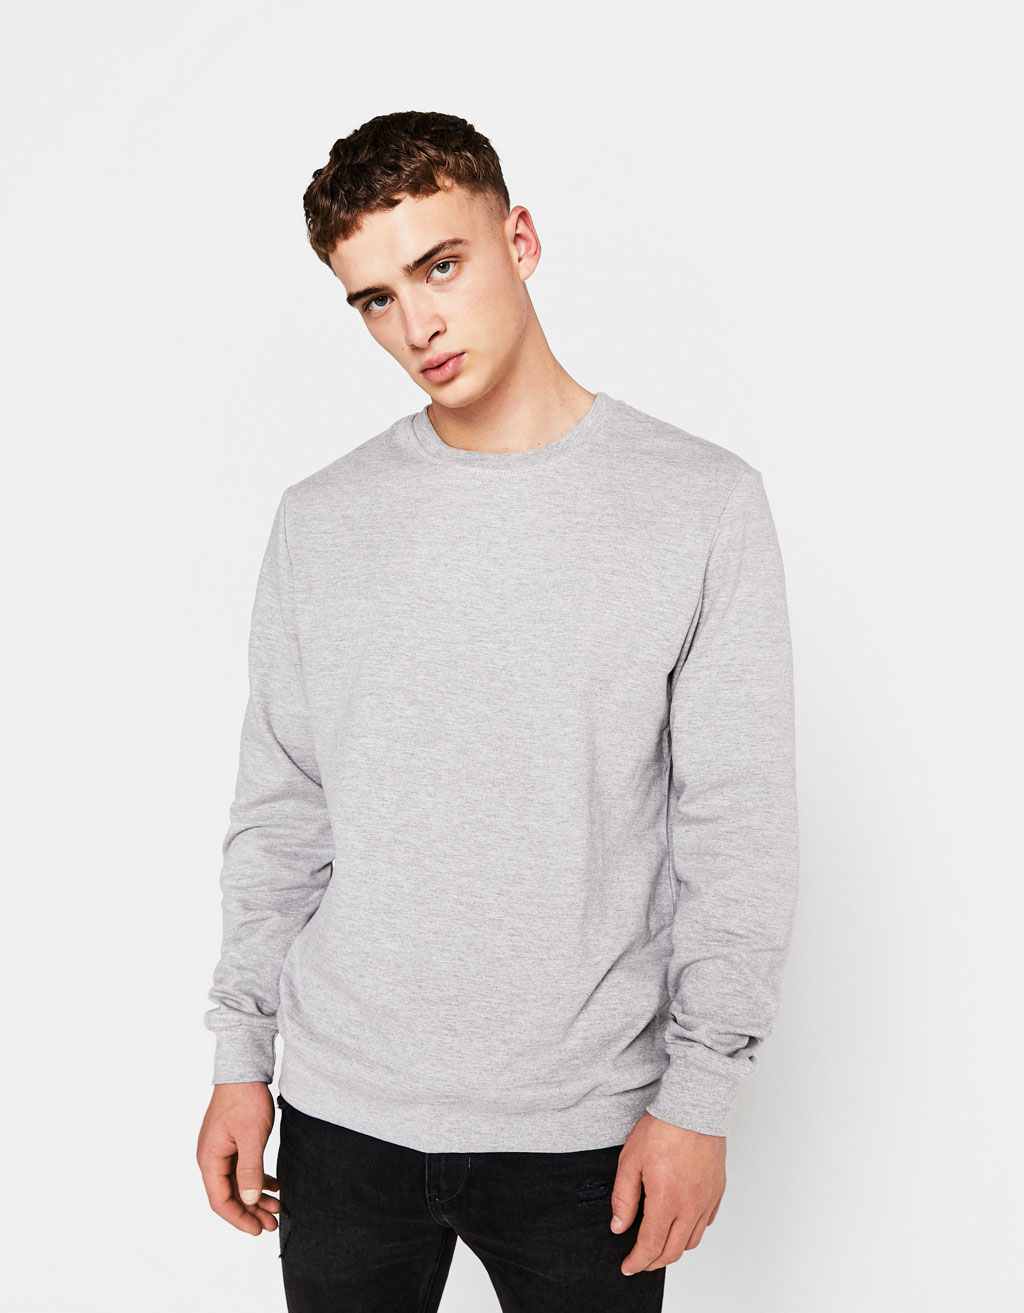 Sweatshirt with stretch waist and cuffs